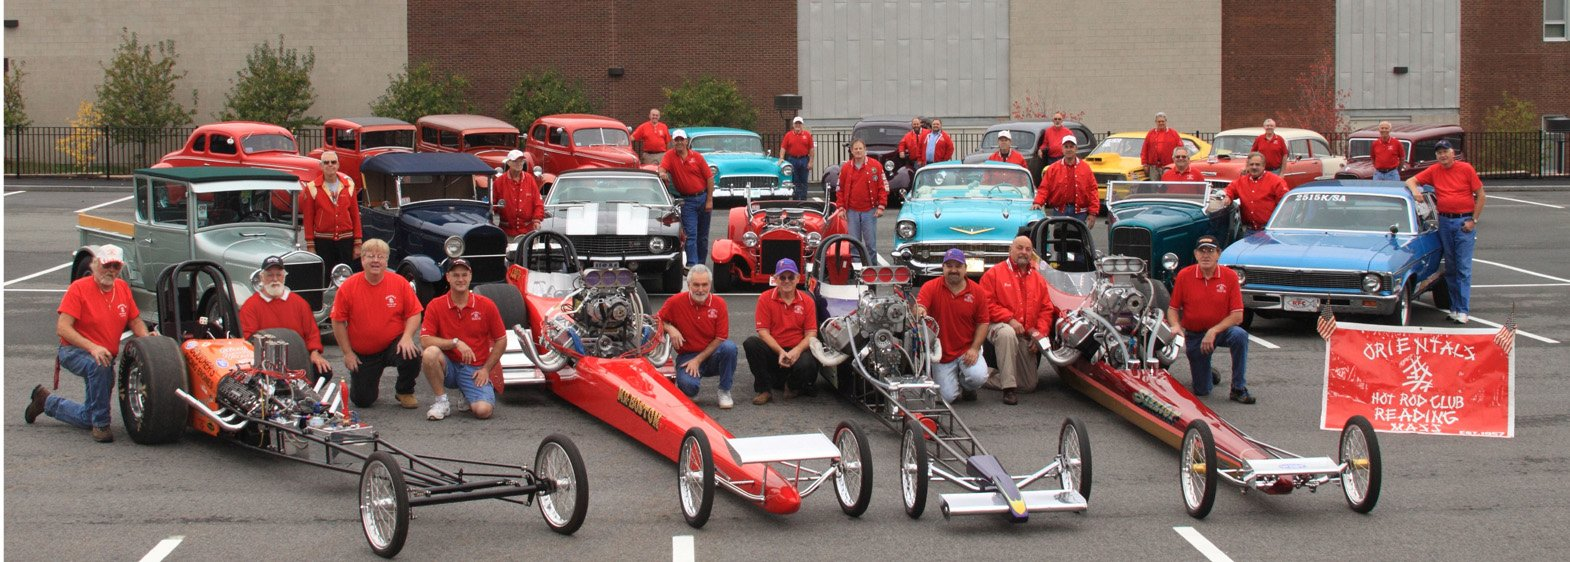 The Orientals Hot Rod Club